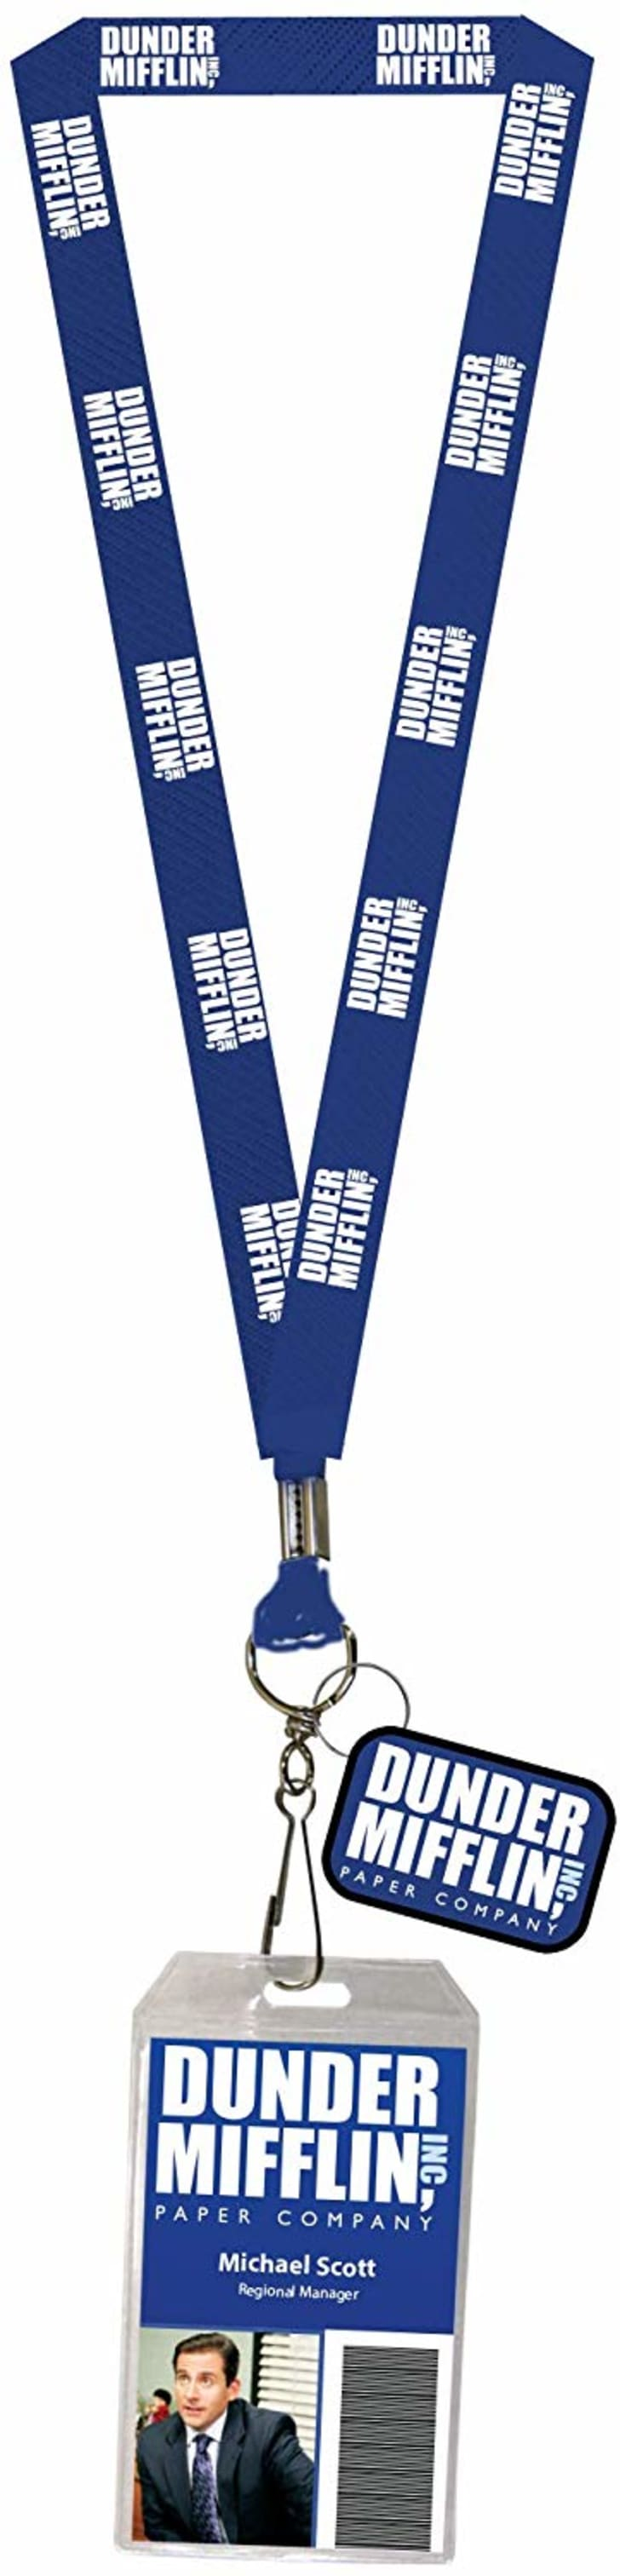 Image of a blue lanyard that features the logo for Dunder Mifflin. The lanyard is attached to a plastic ID cover.